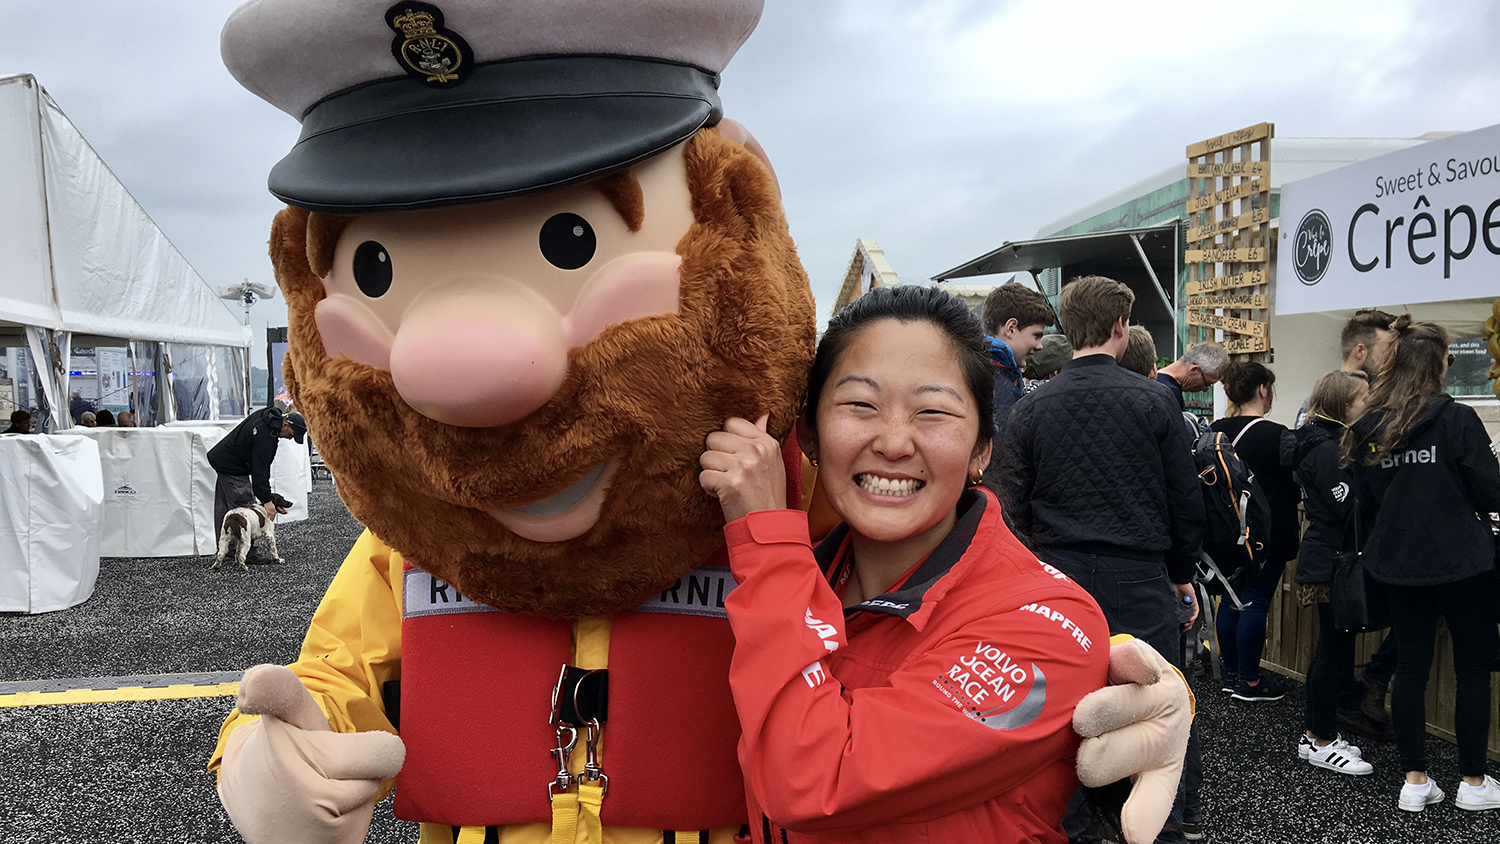 Kari Andersen from Helly Hansen, hanging out with RNLI mascot Stormy Stan